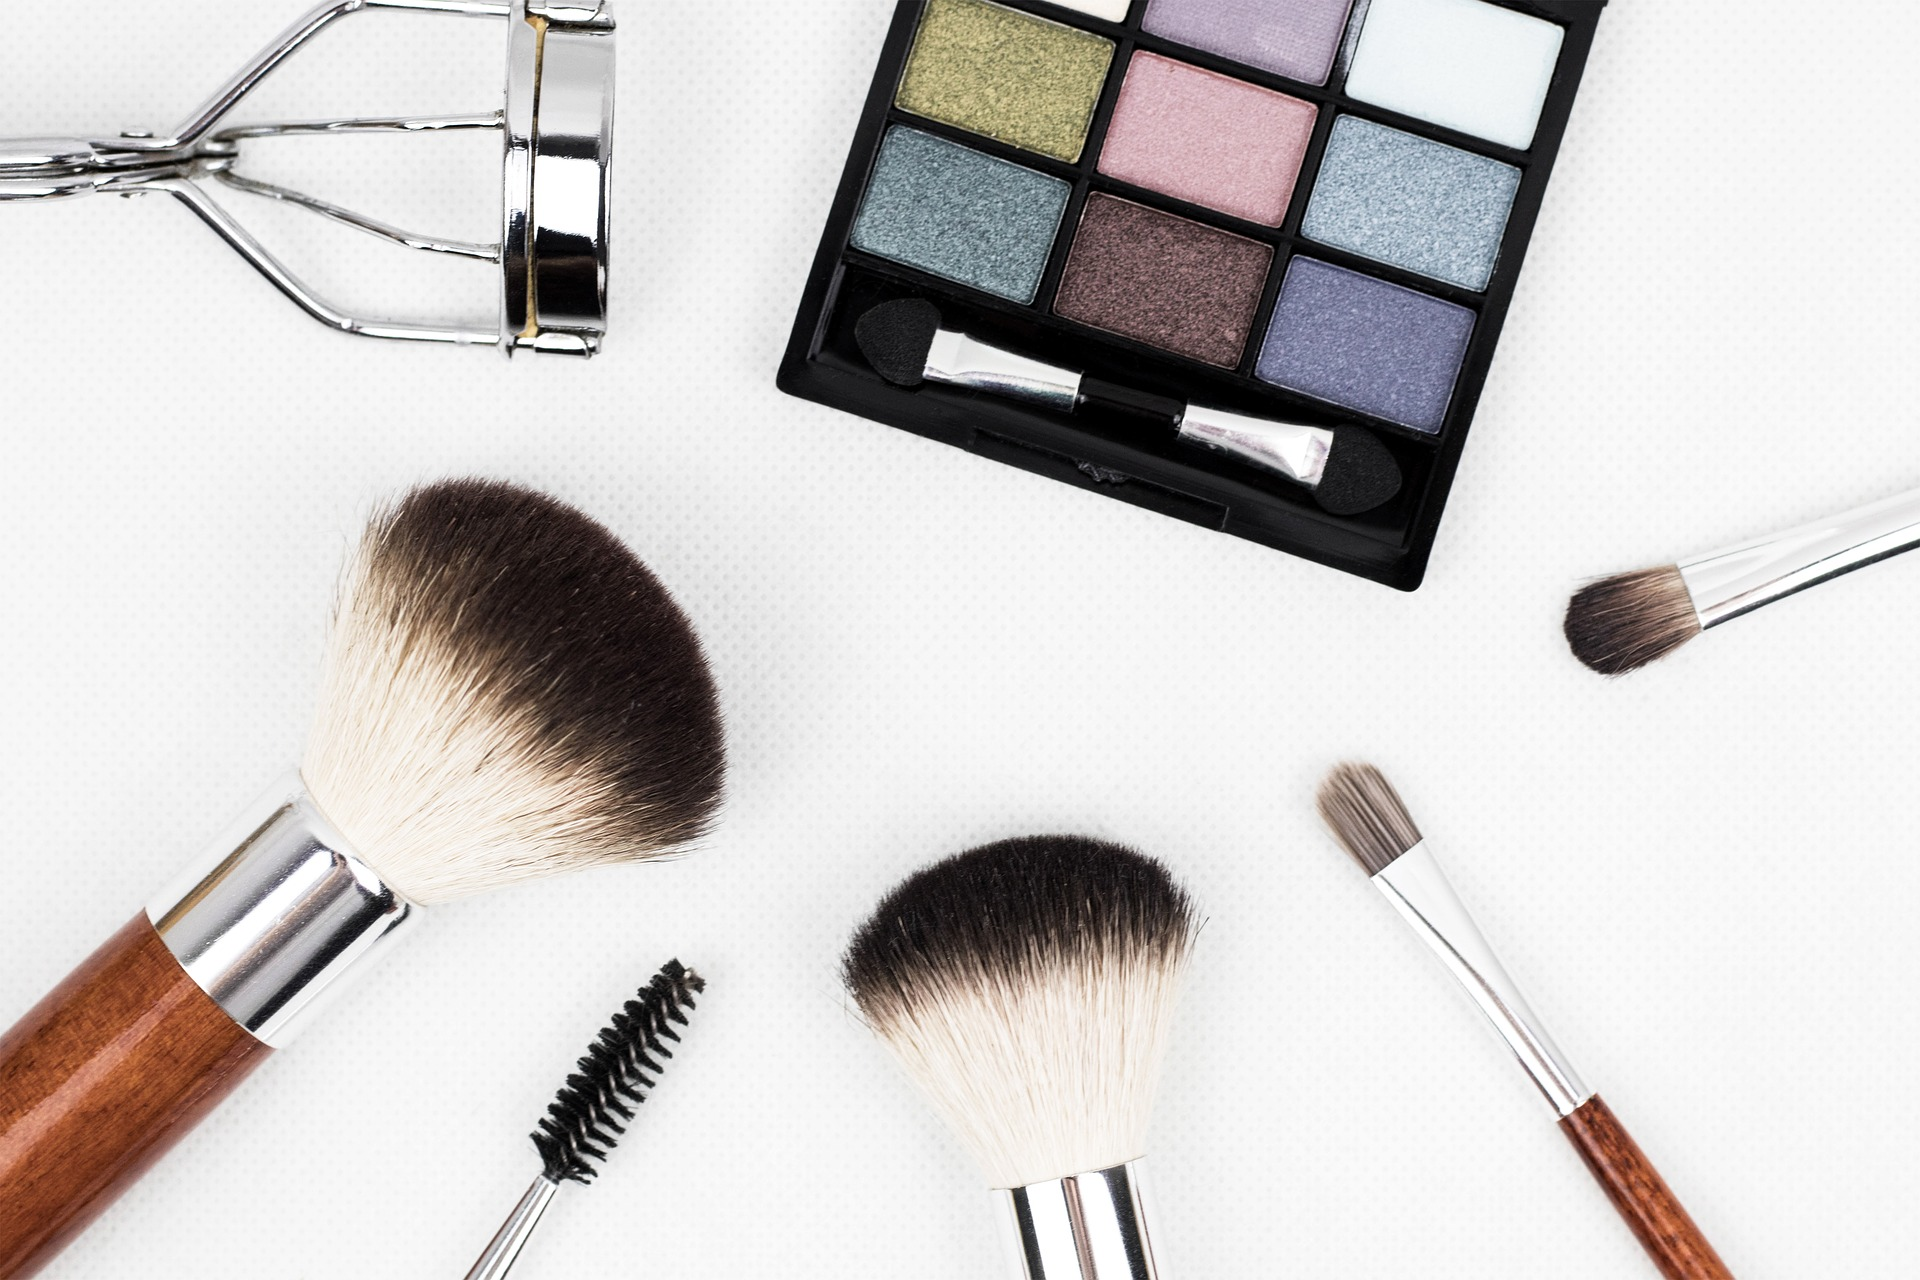 Common Makeup Chemicals to Avoid